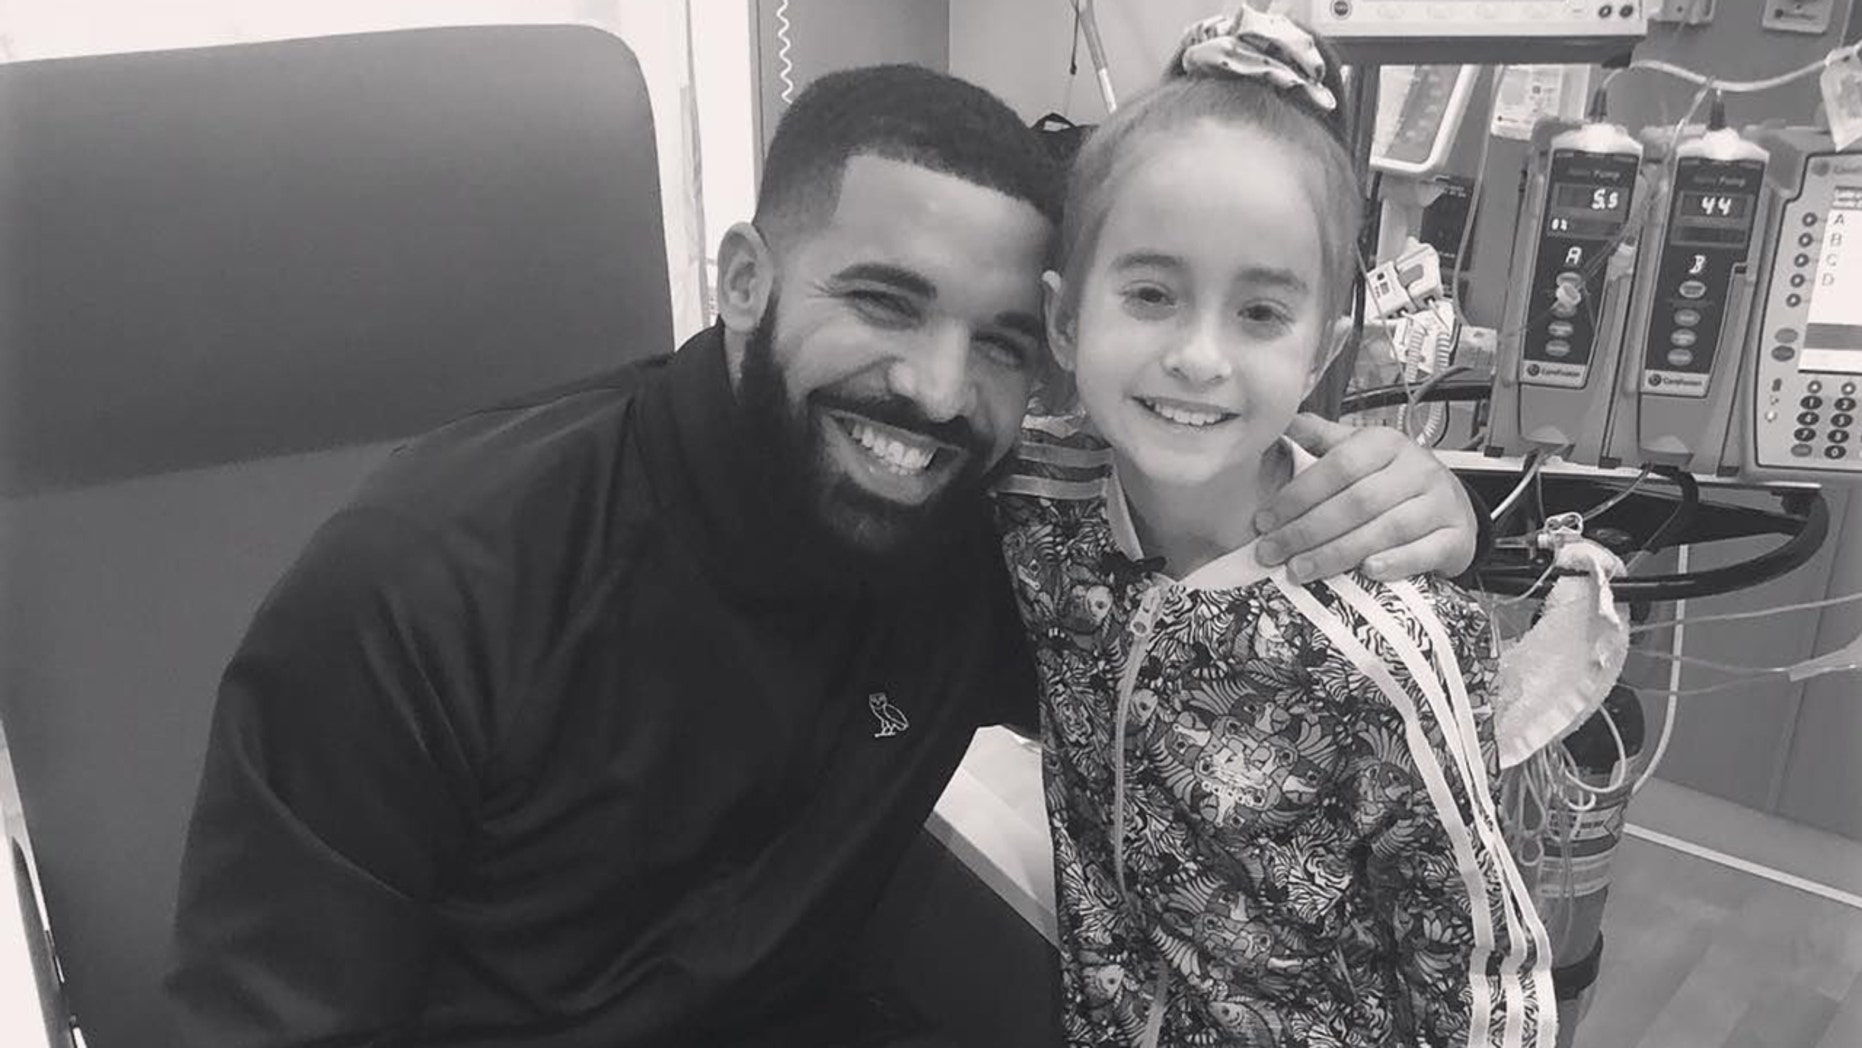 Sofia Sanchez, pictured with the rapper Drake, has found out she's getting a heart transplant.